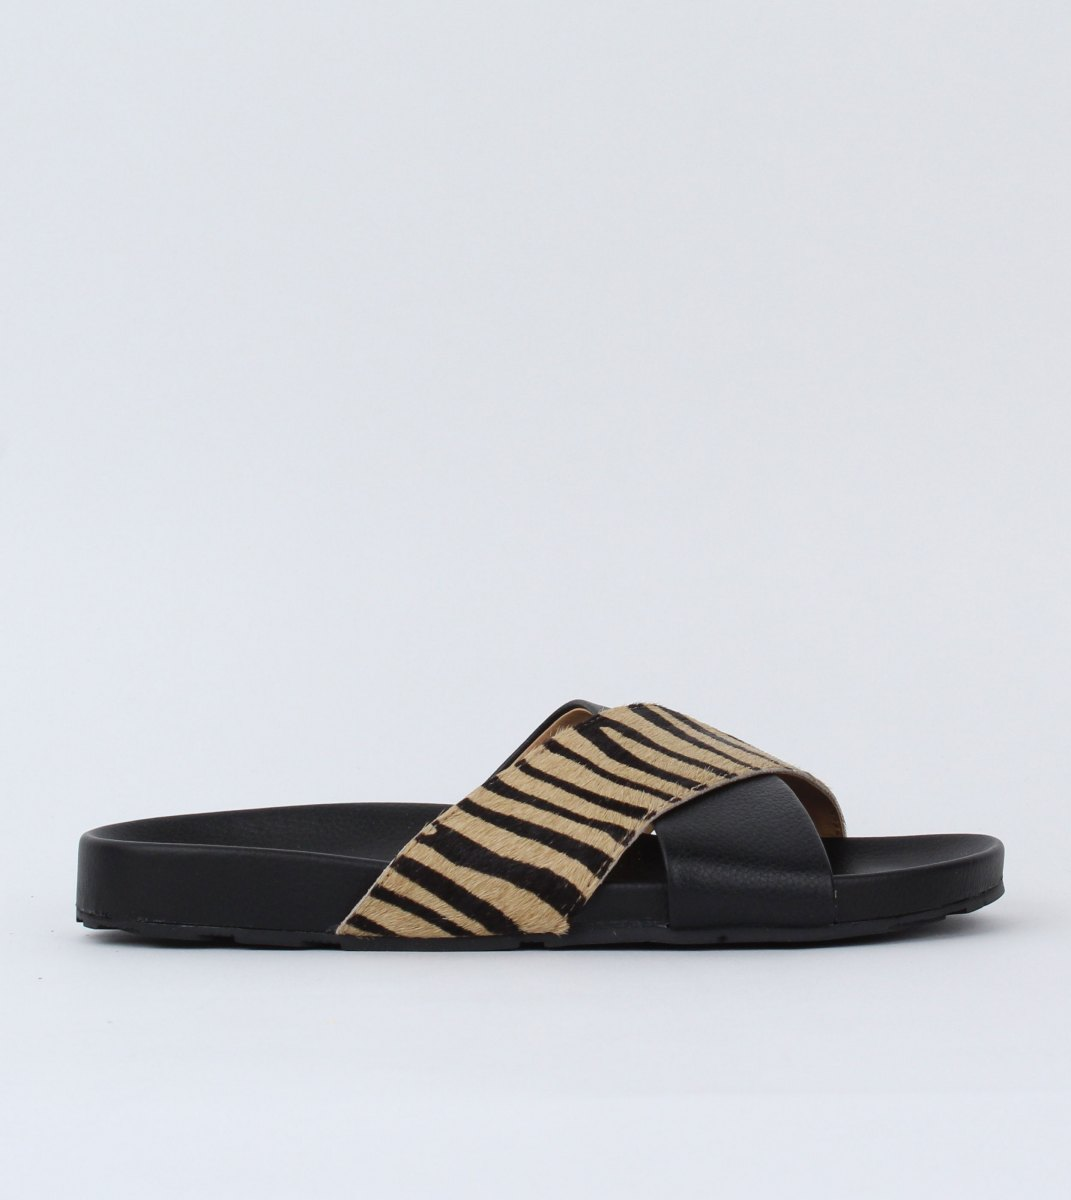 Rollie-Tide_Cross_Slide-Black_Zebra-Outside